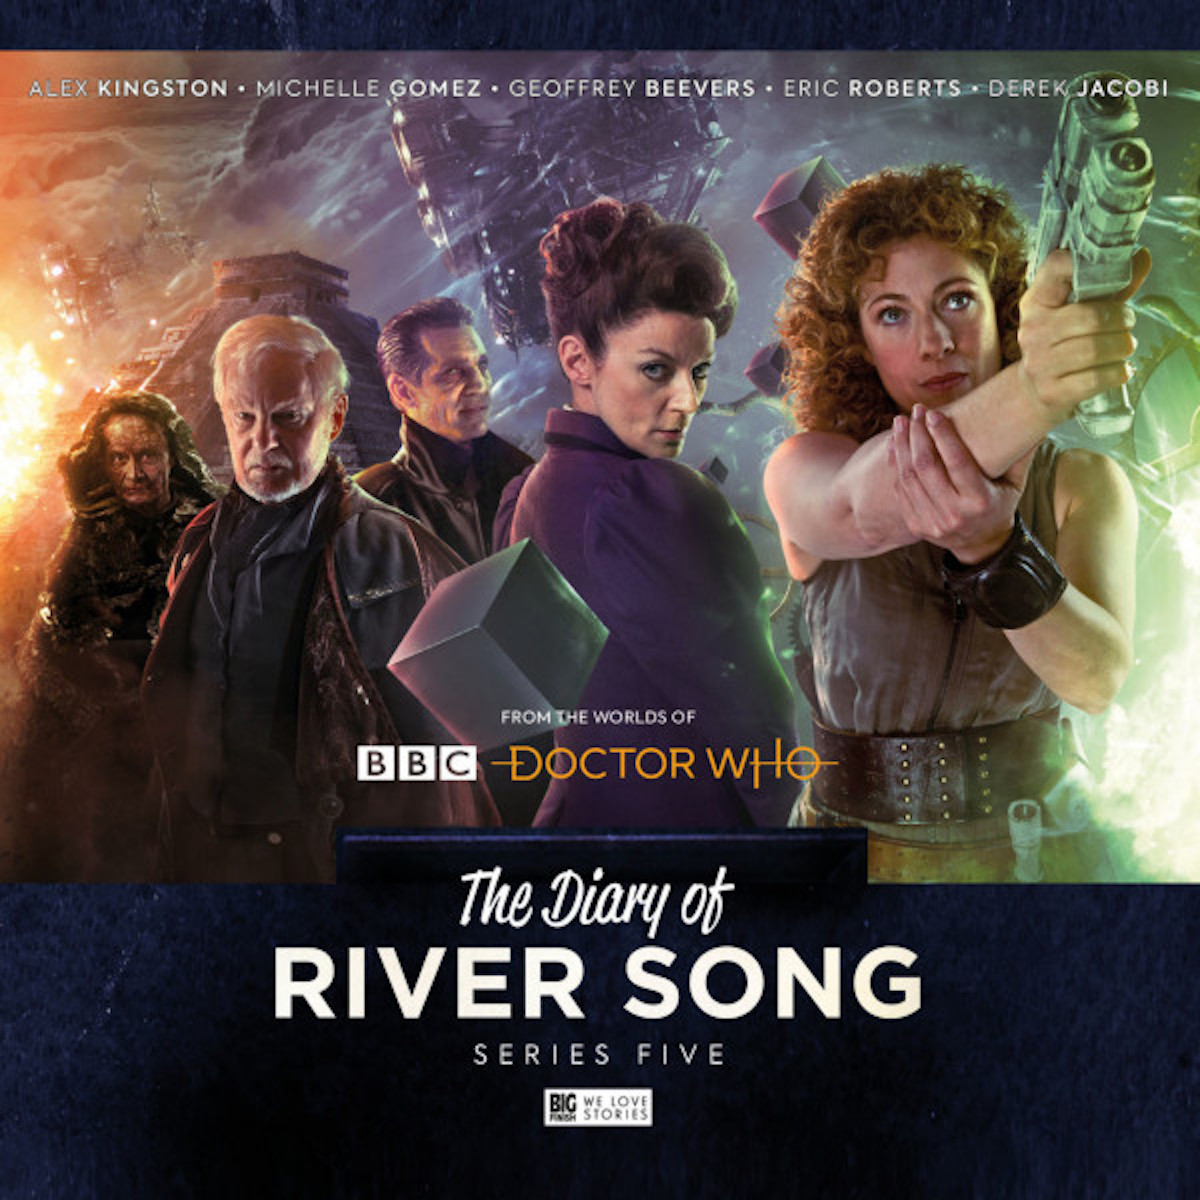 The Diary Of River Song Volume 5